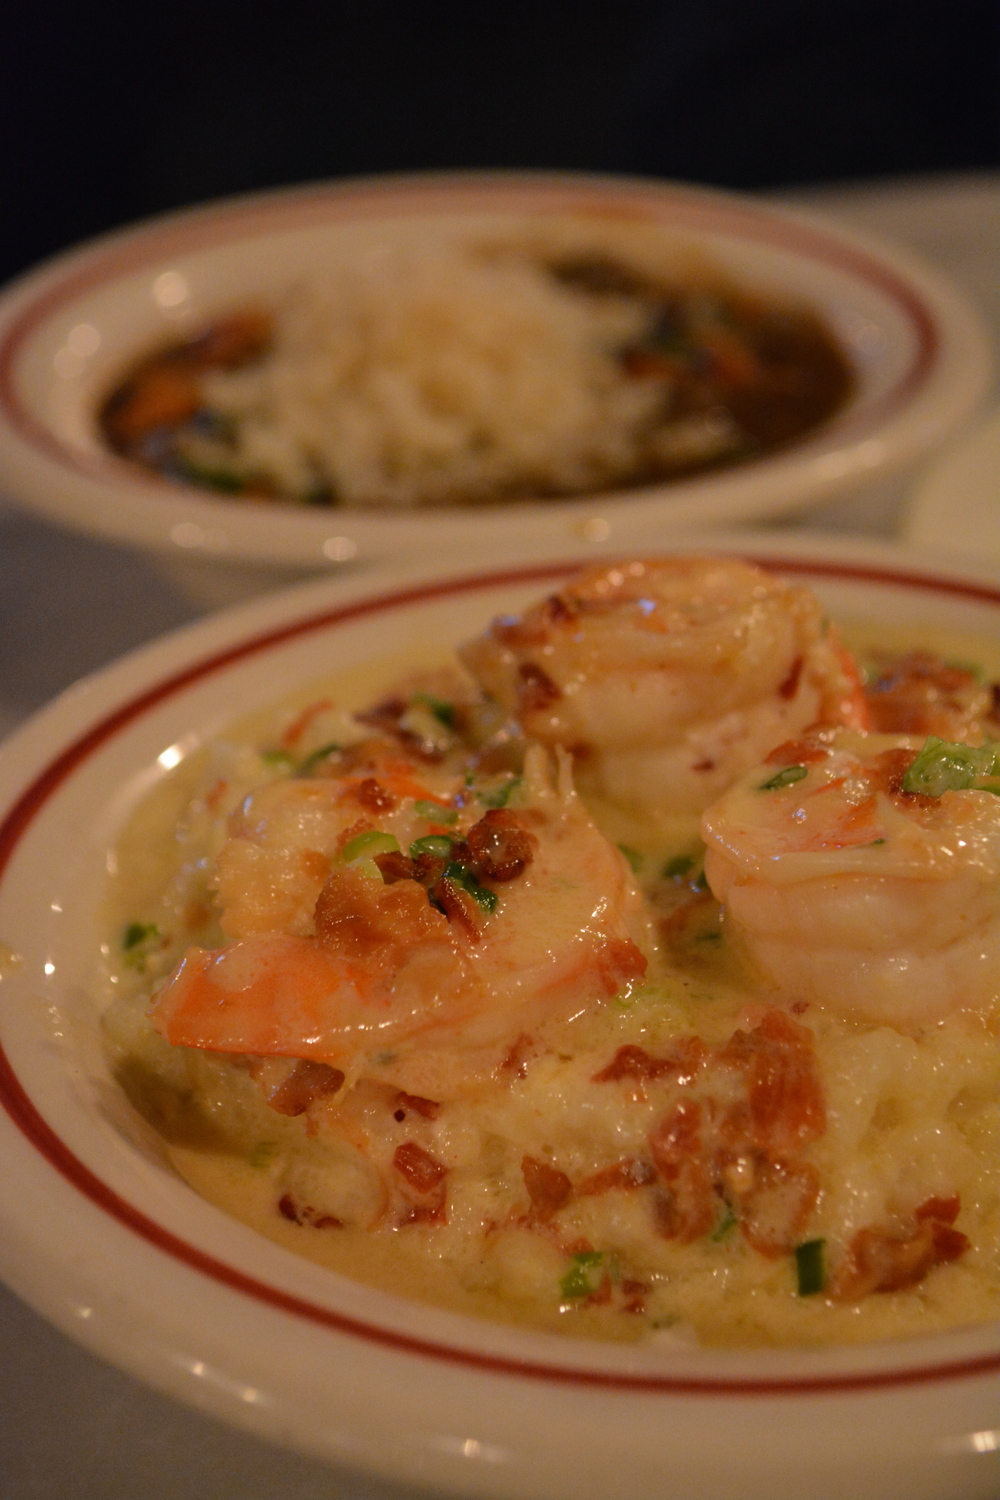 Storyville's shrimp and grits can leave diners thinking about grits for days.